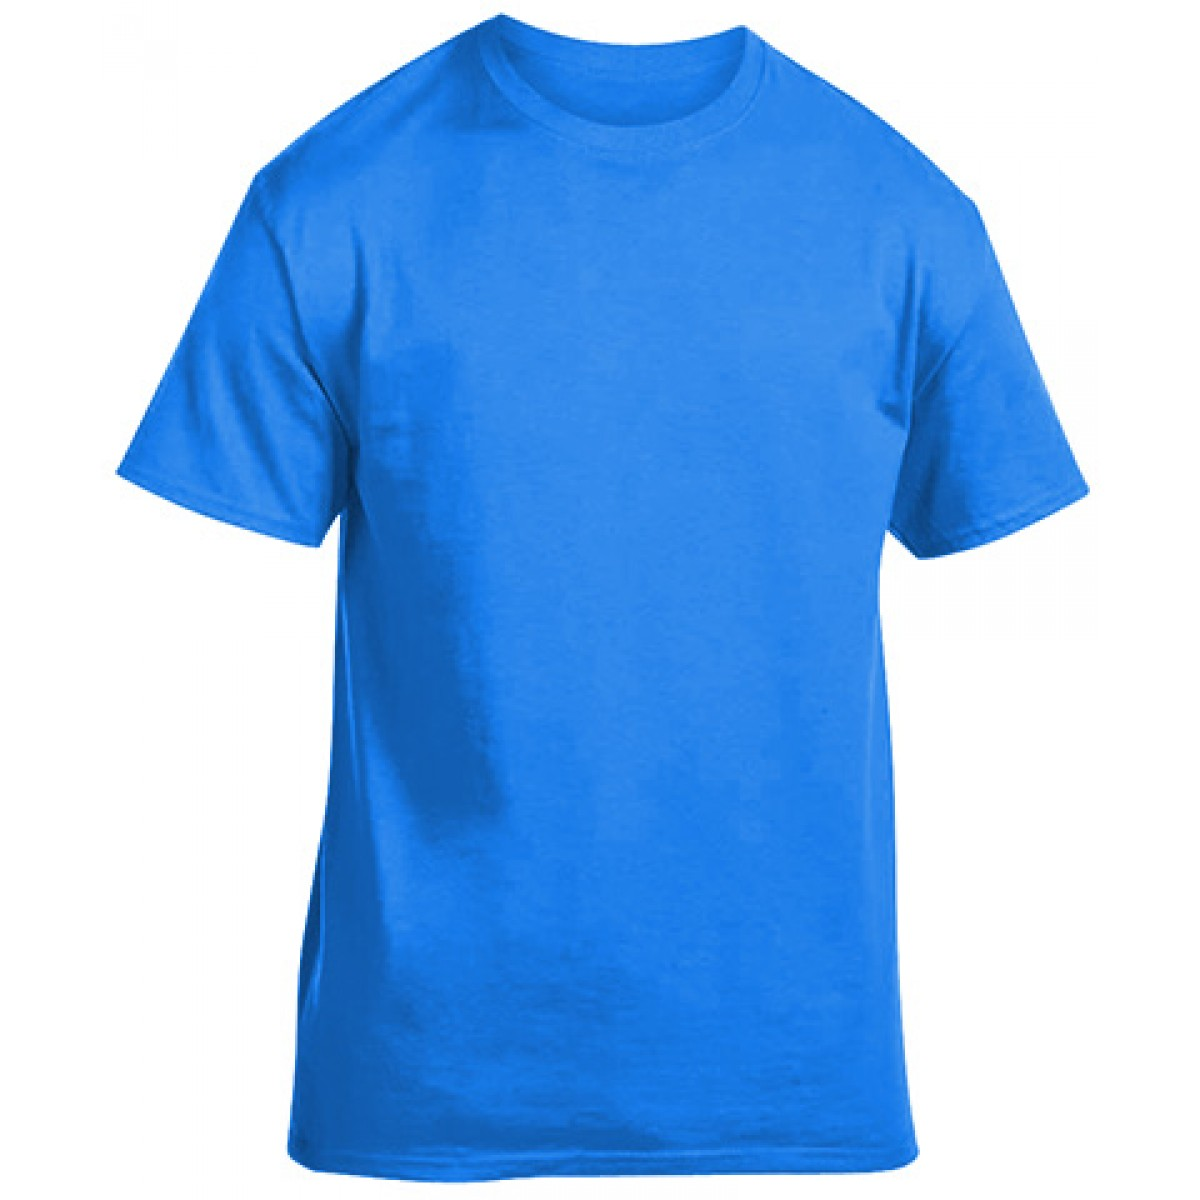 Soft 100% Cotton T-Shirt-Neon Blue-2XL